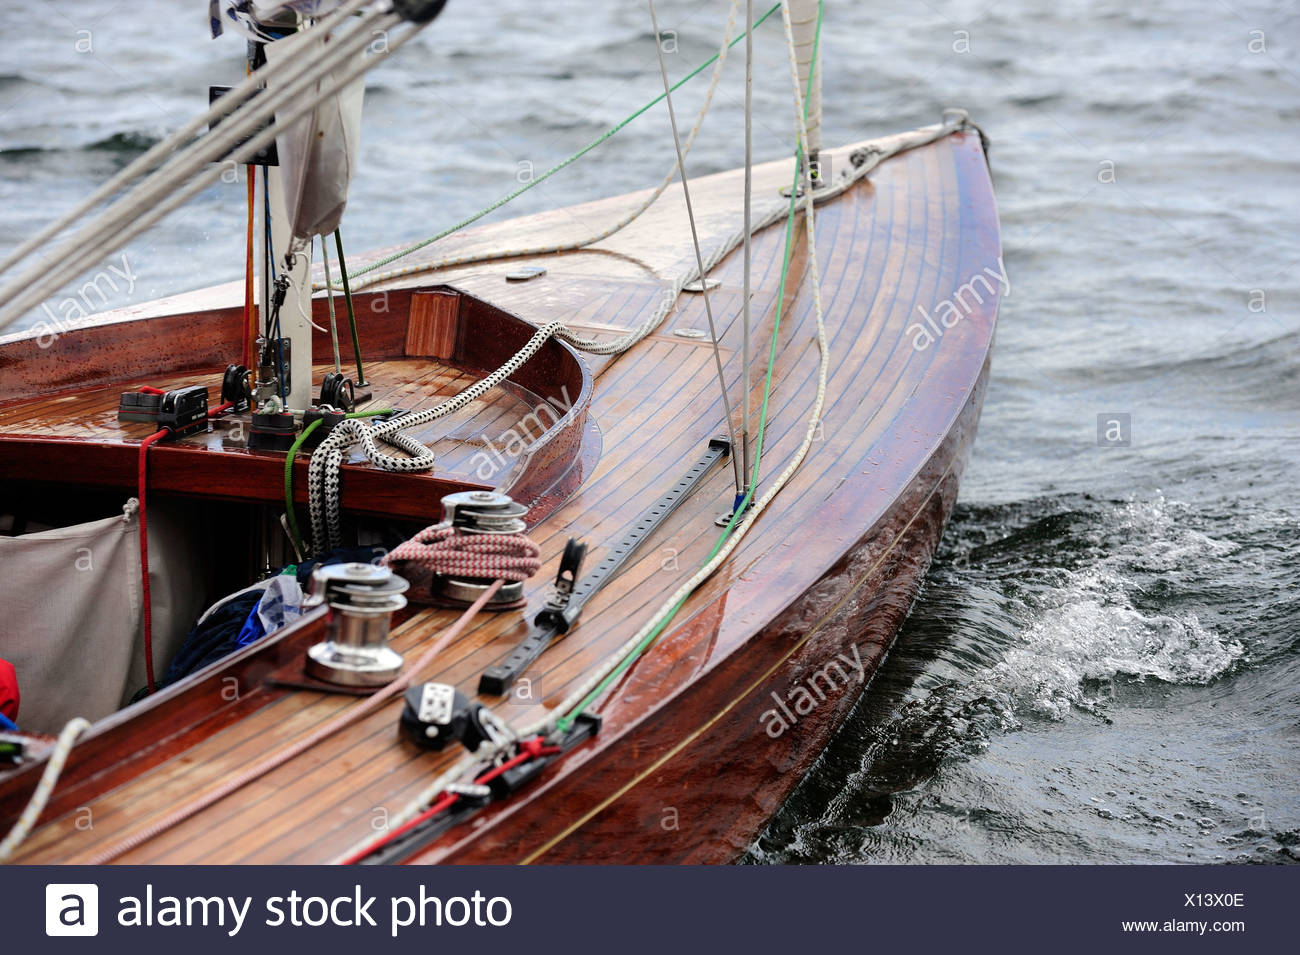 Detail of a sail boat - Stock Image